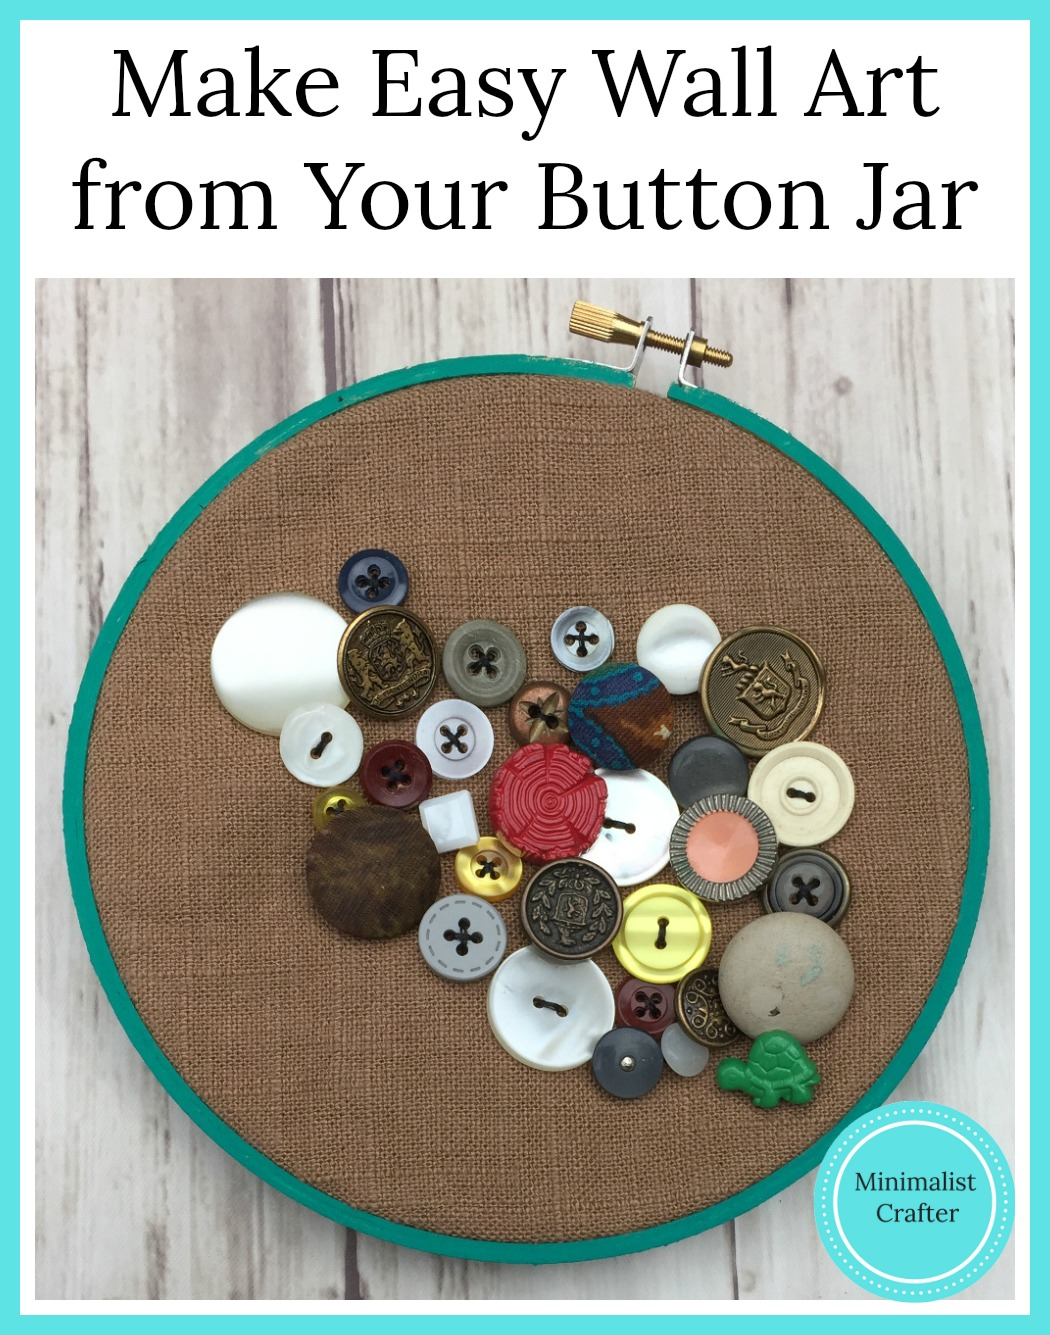 Get your button collection out of the jar and into this cute wall art idea.